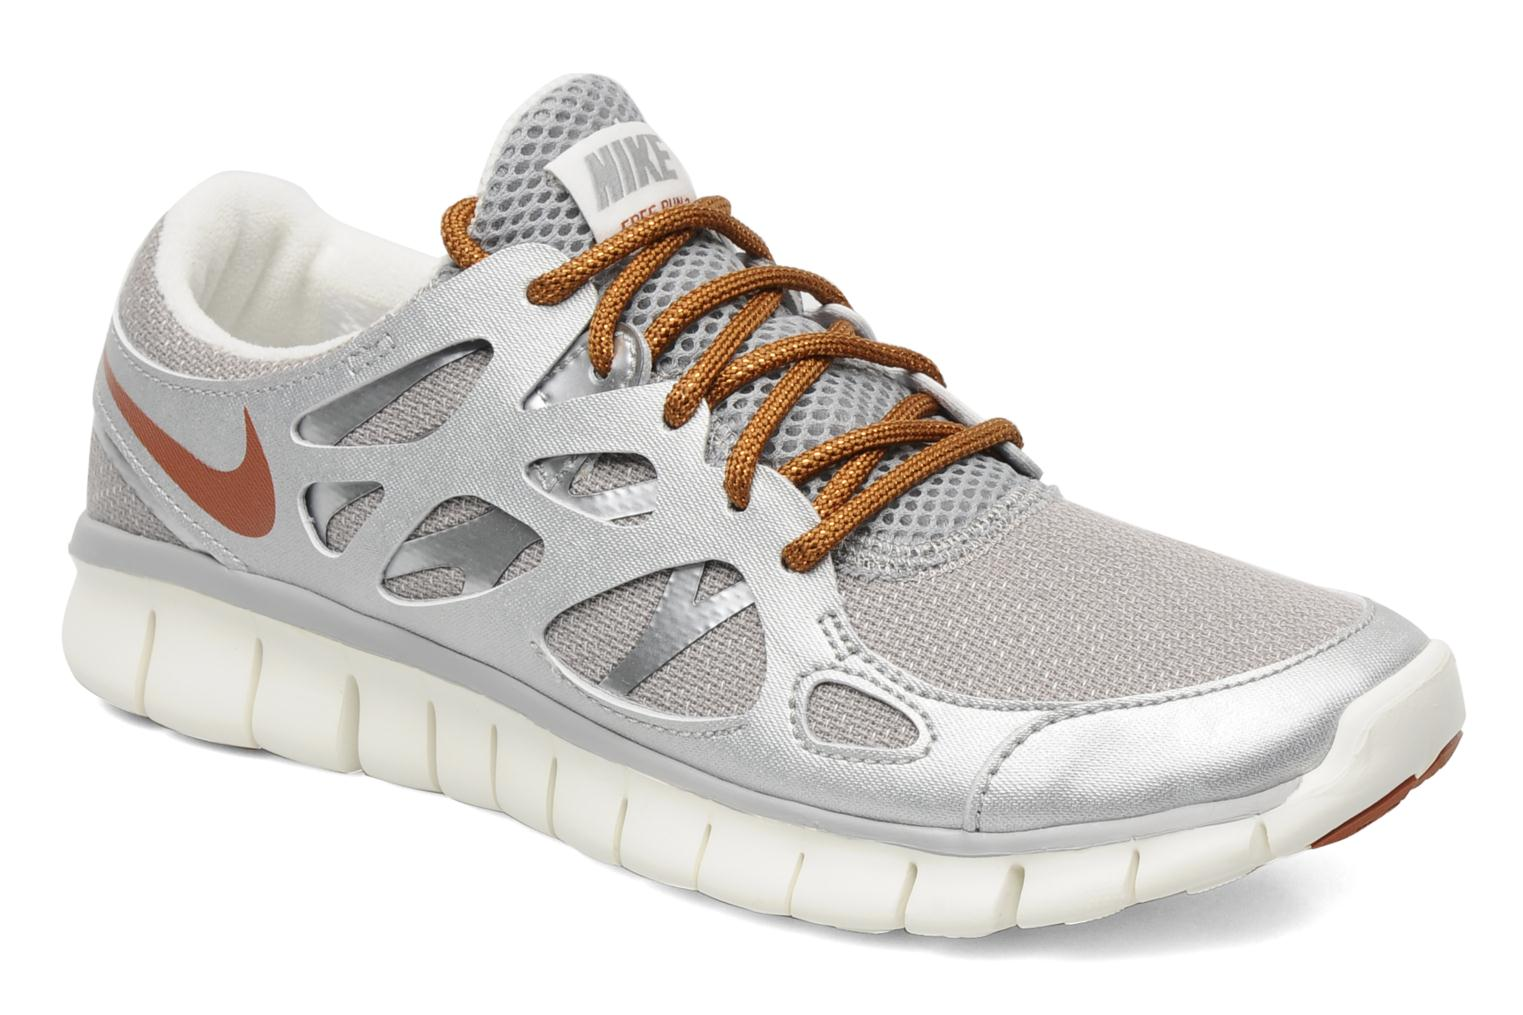 663f840e6d57 Get Quotations · Nike Free Run 3 Ext 555441 004 Mens Laced Suede   Textile  Trainers